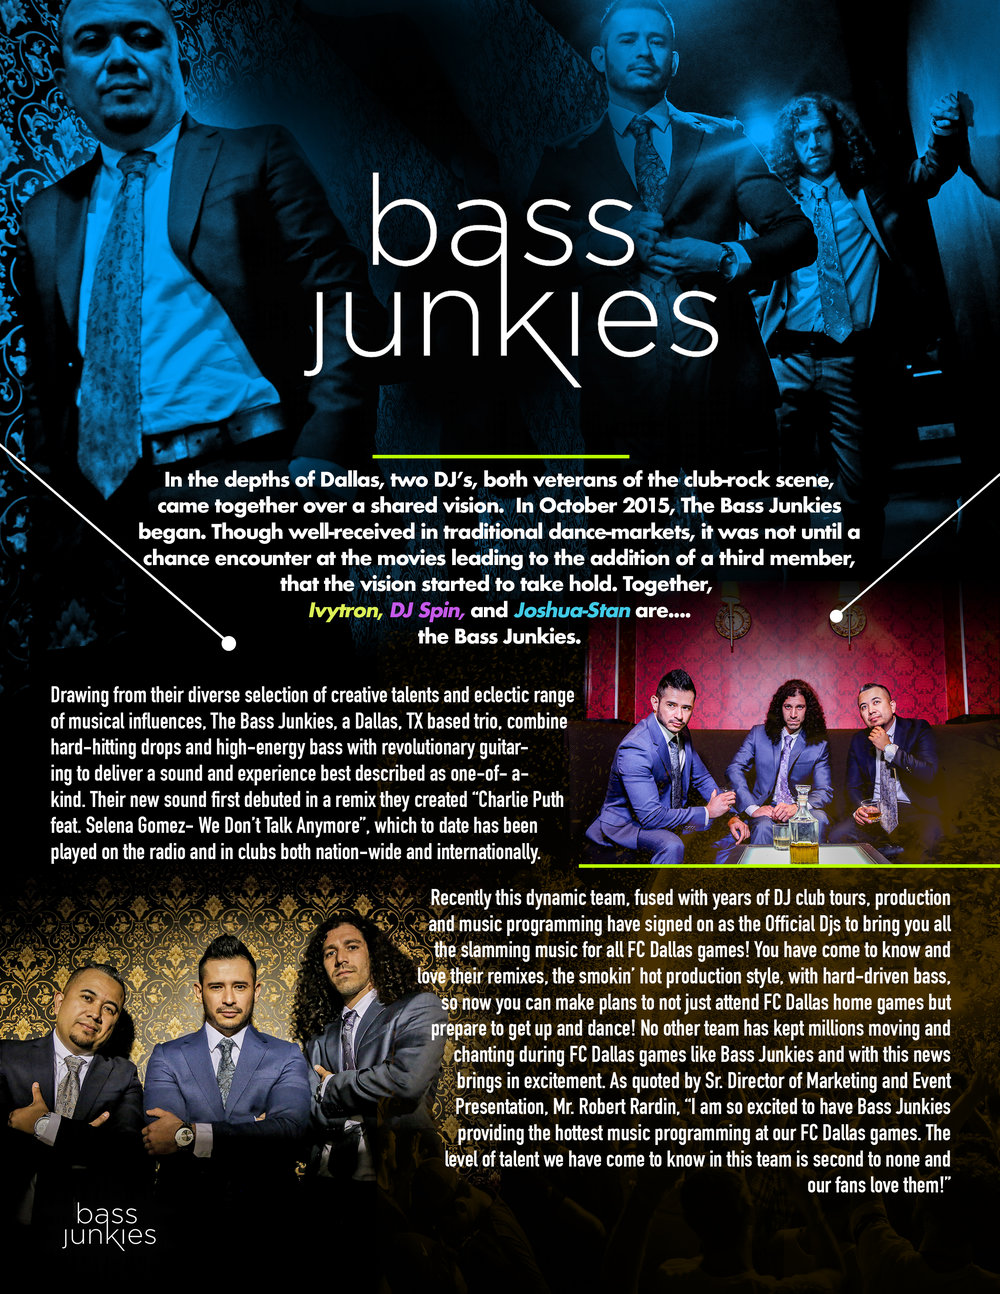 bass-junkies-epk-pg1-2.jpg